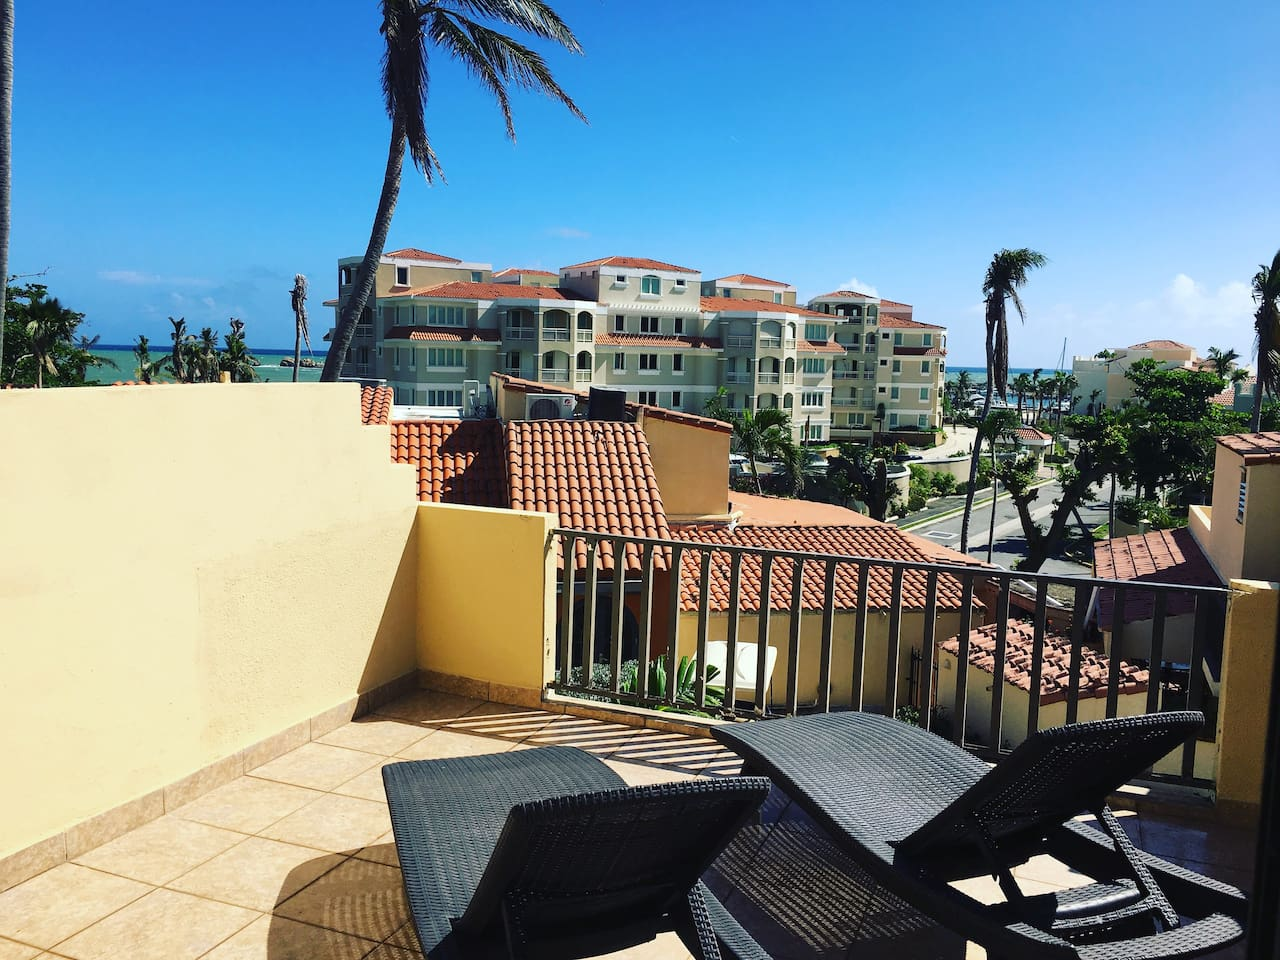 Balcony & lounge chairs. Partial Ocean View. 2min walk from beach & 5mins from Yacht Club!